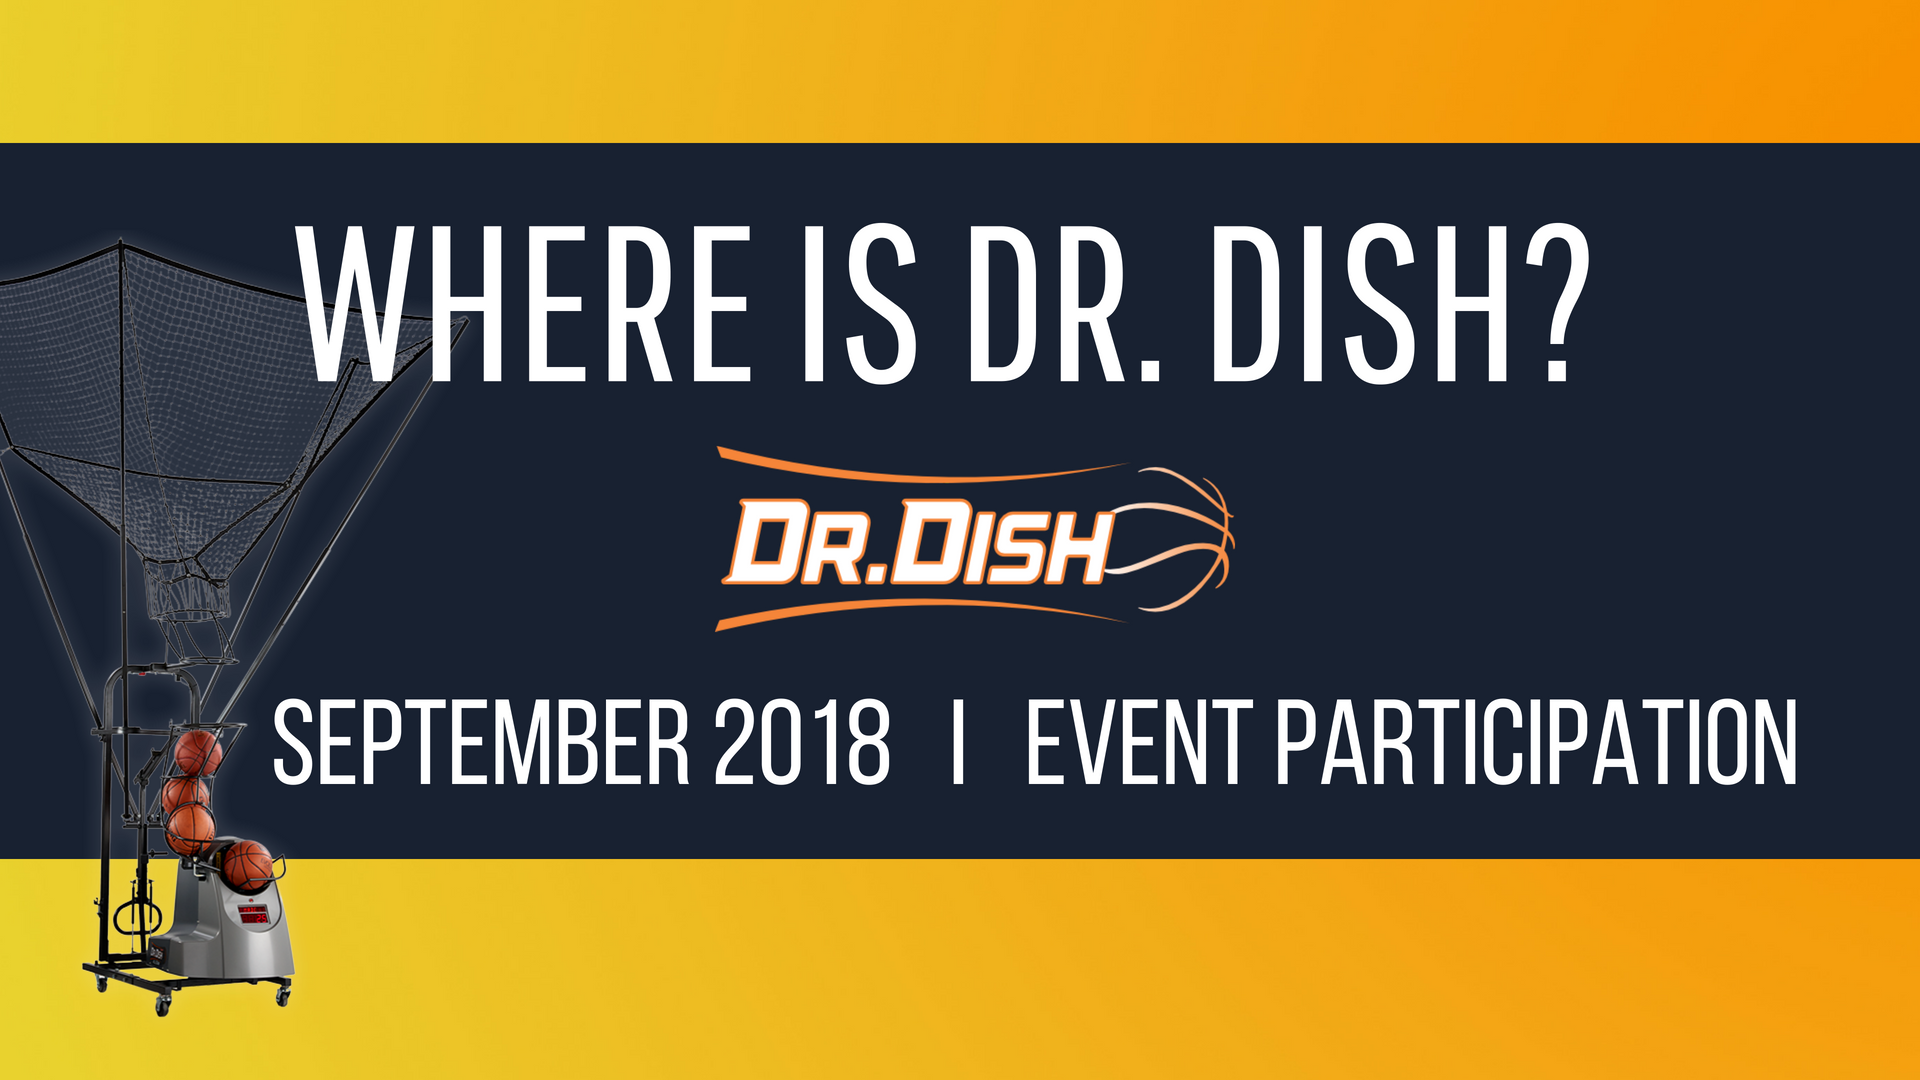 Where is Dr. Dish: September 2018